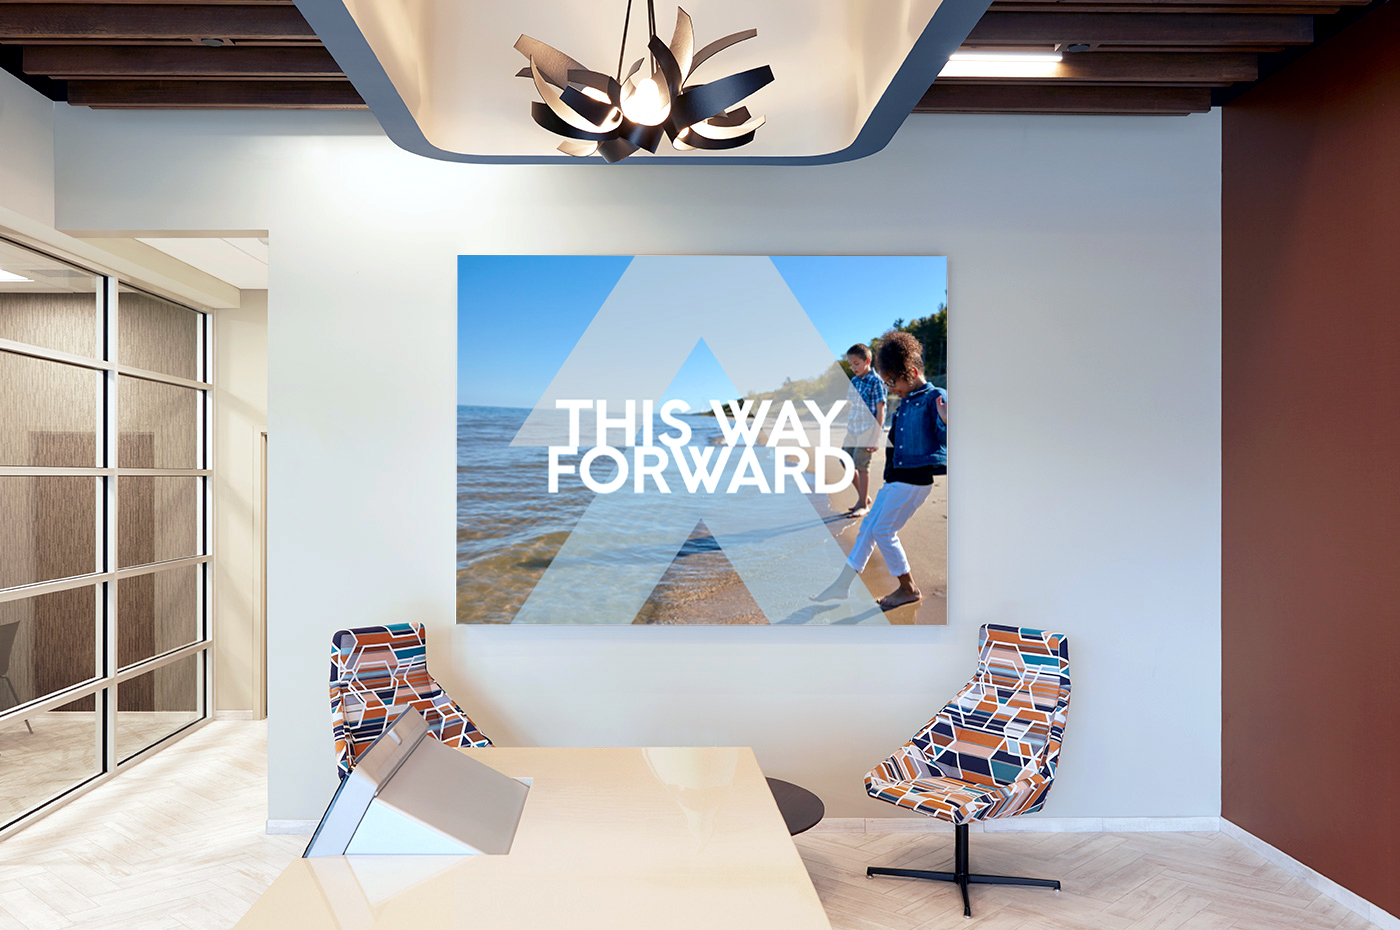 Adventure Credit Union Interior with This Way Forward Sign